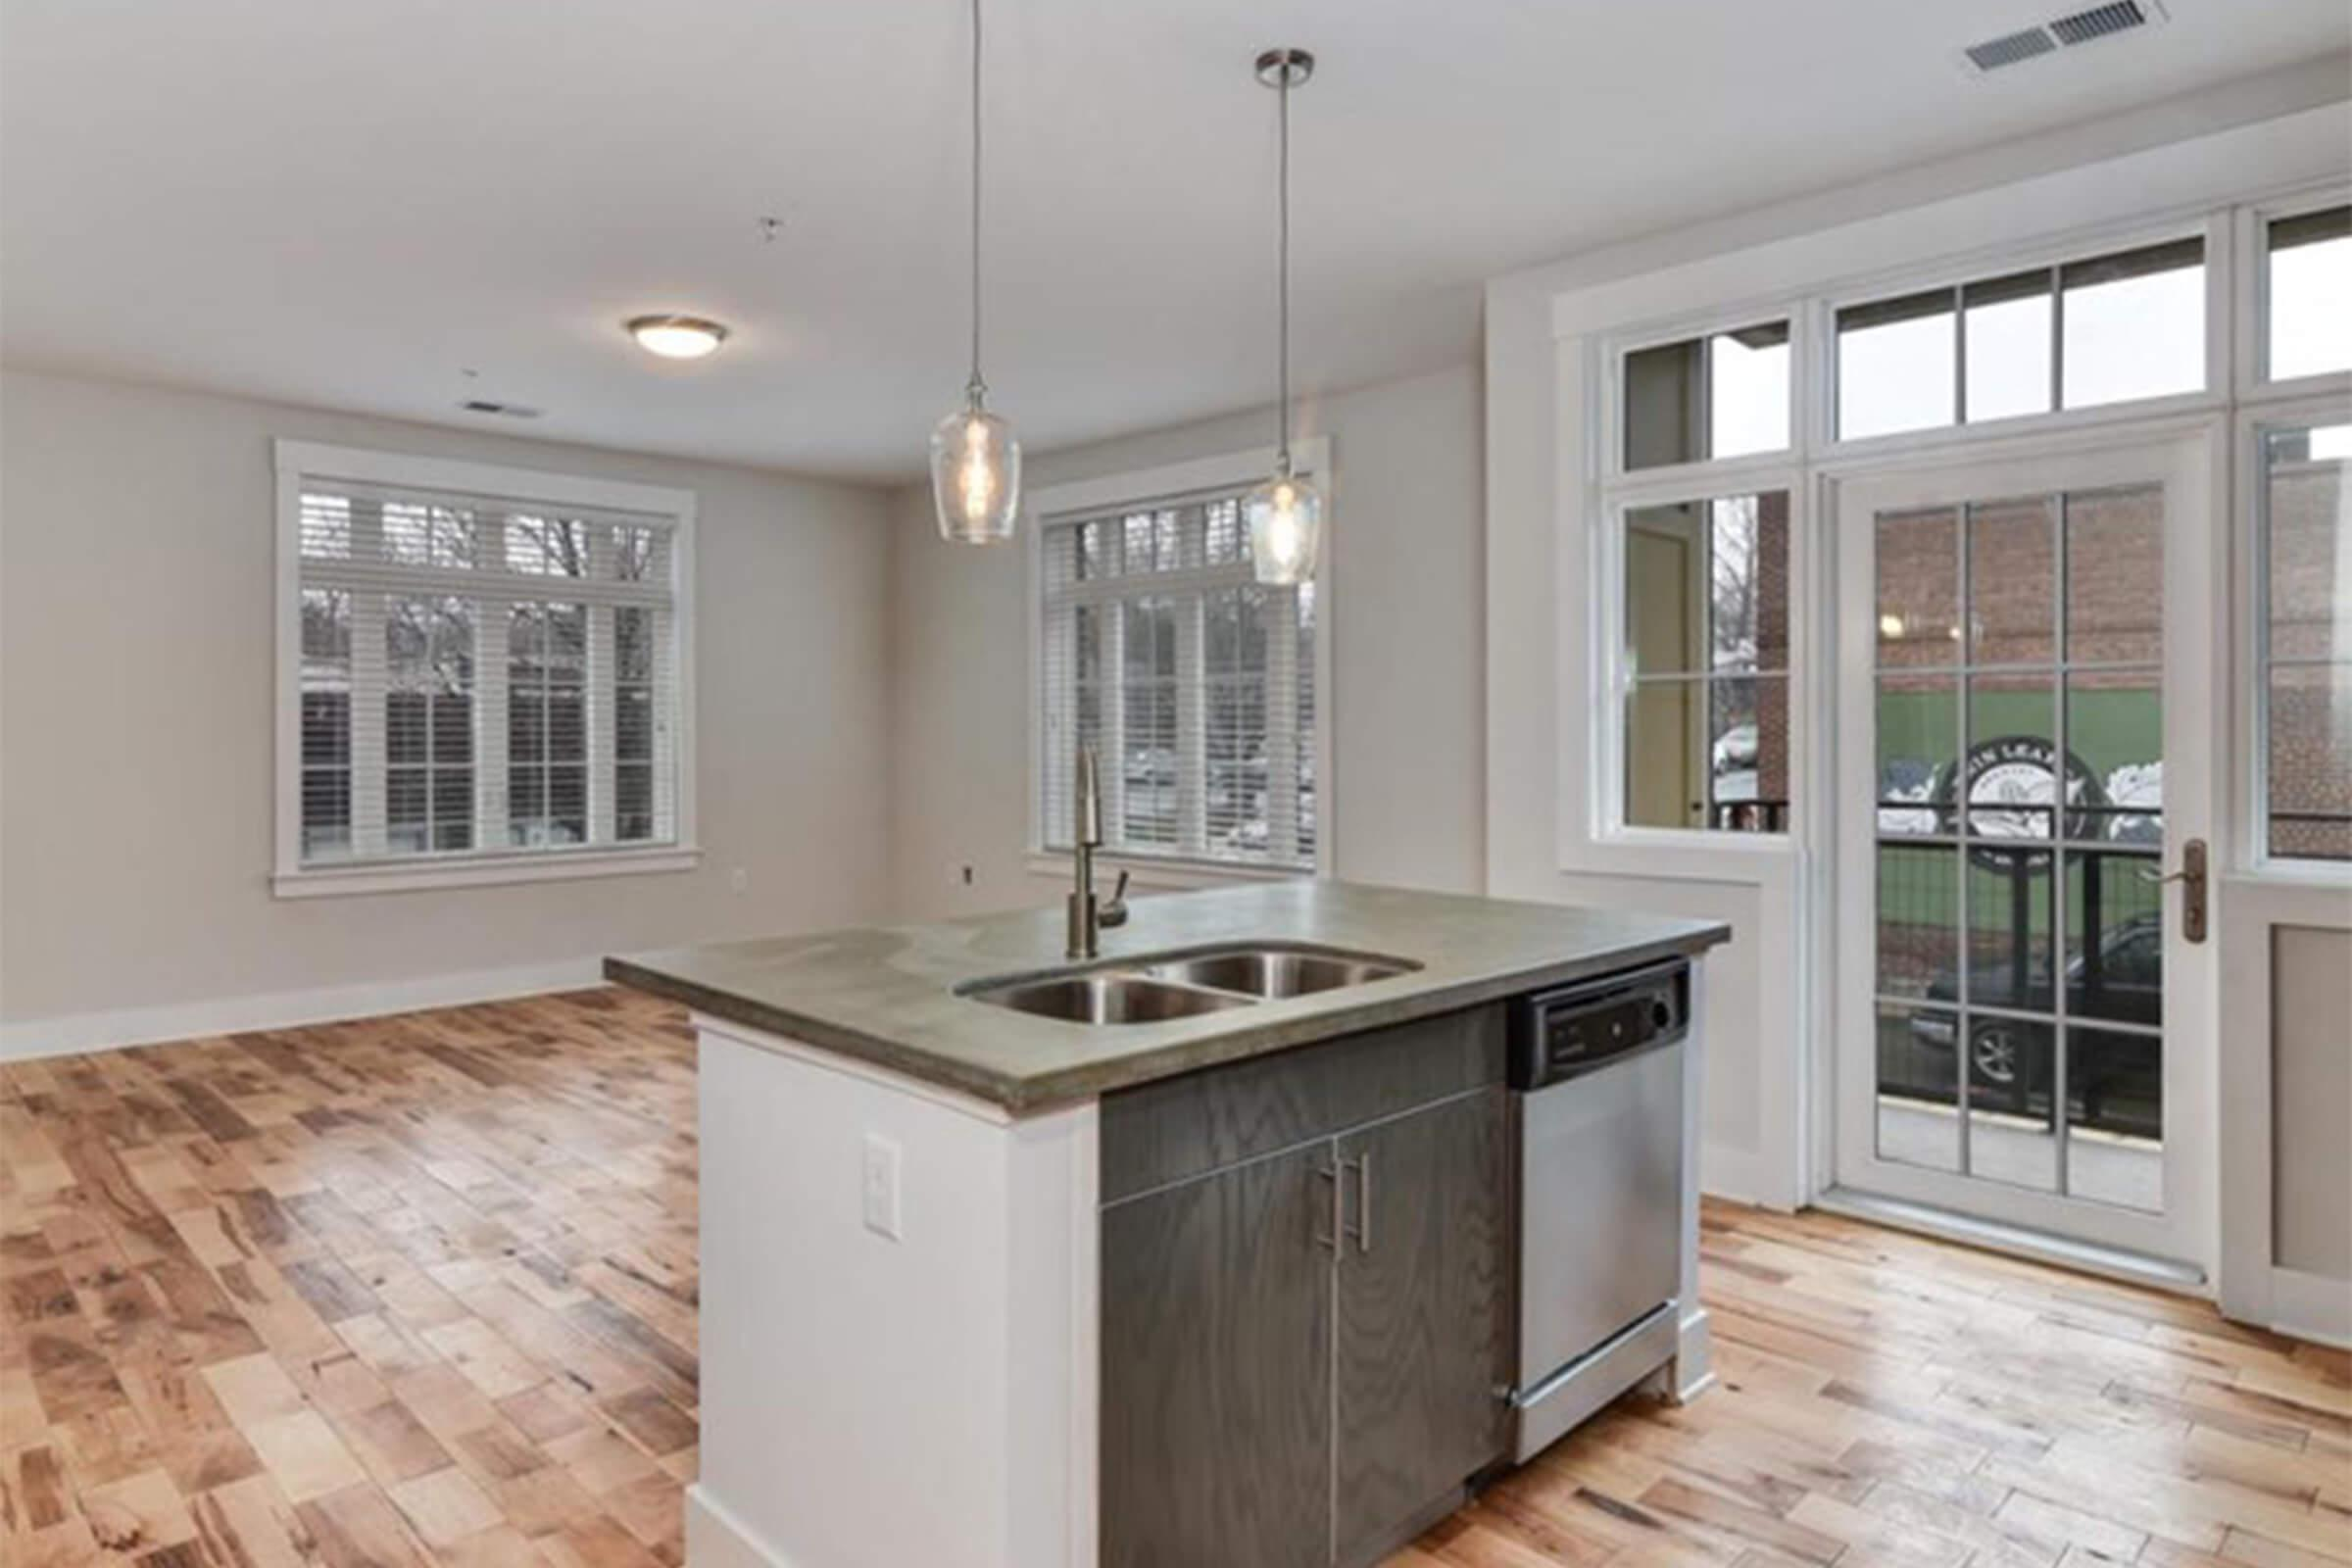 a kitchen with a large window